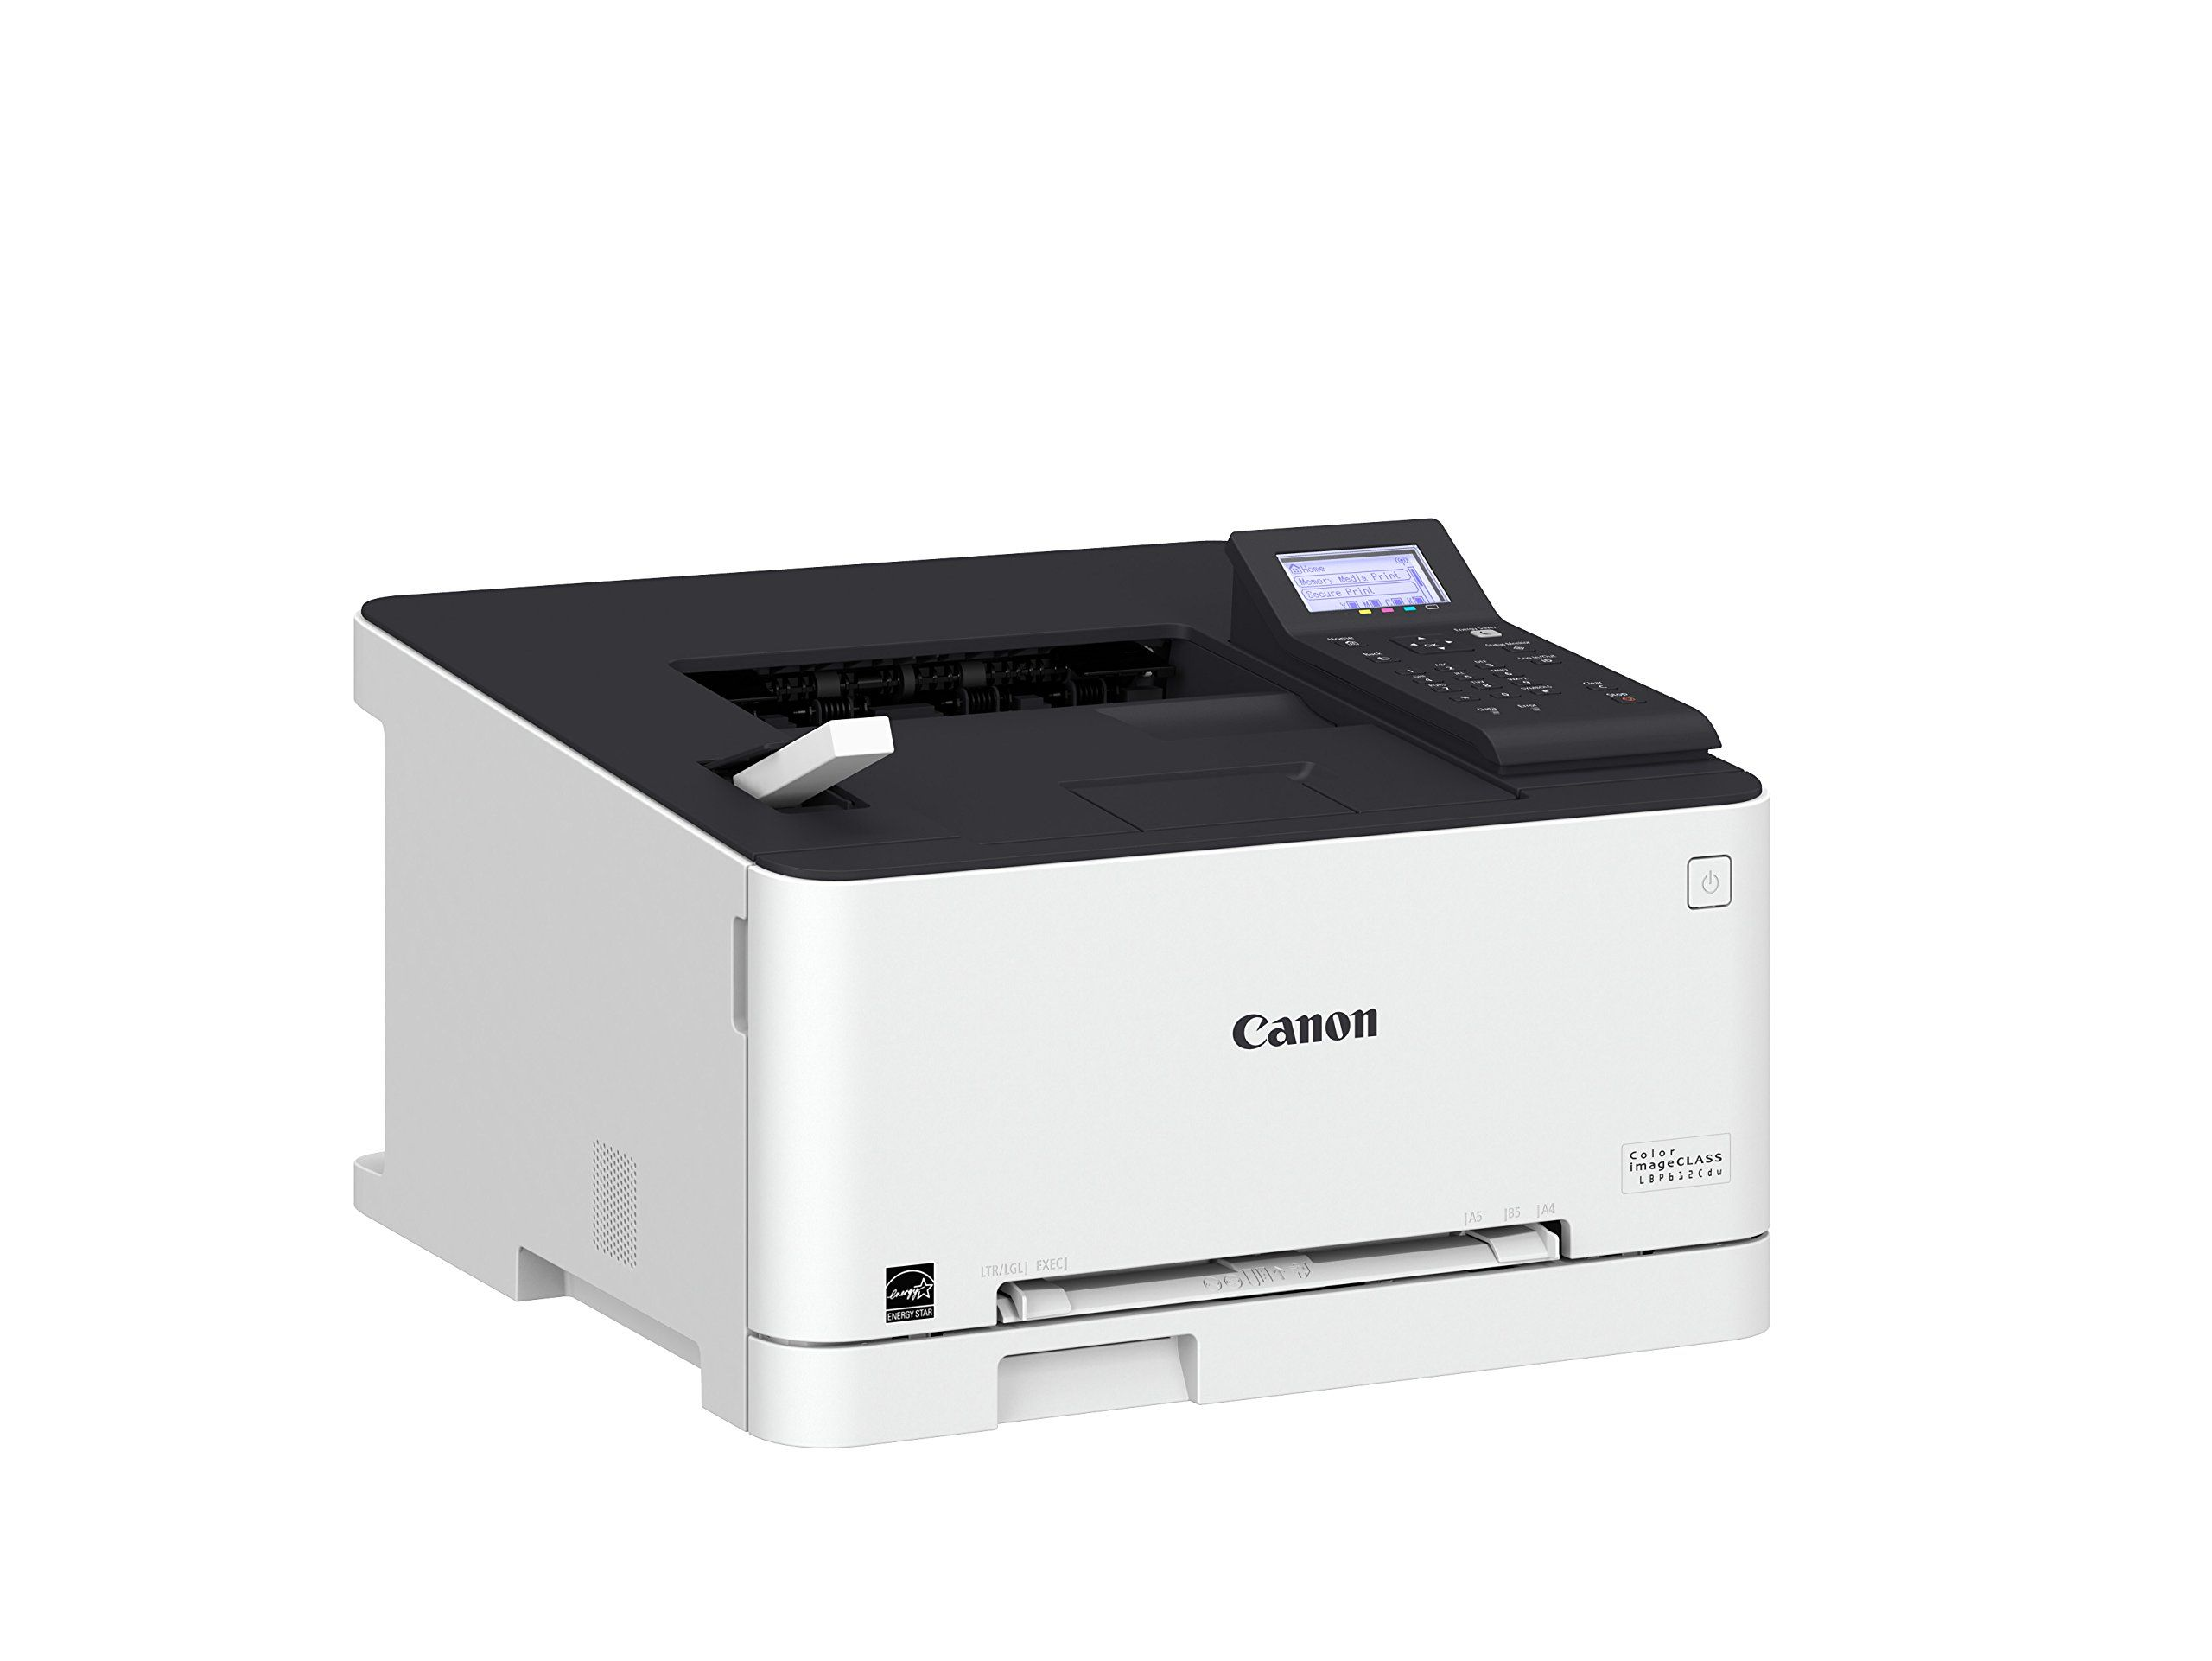 Canon Imageclass Lbp612cdw Color Laser Printer You Can Get